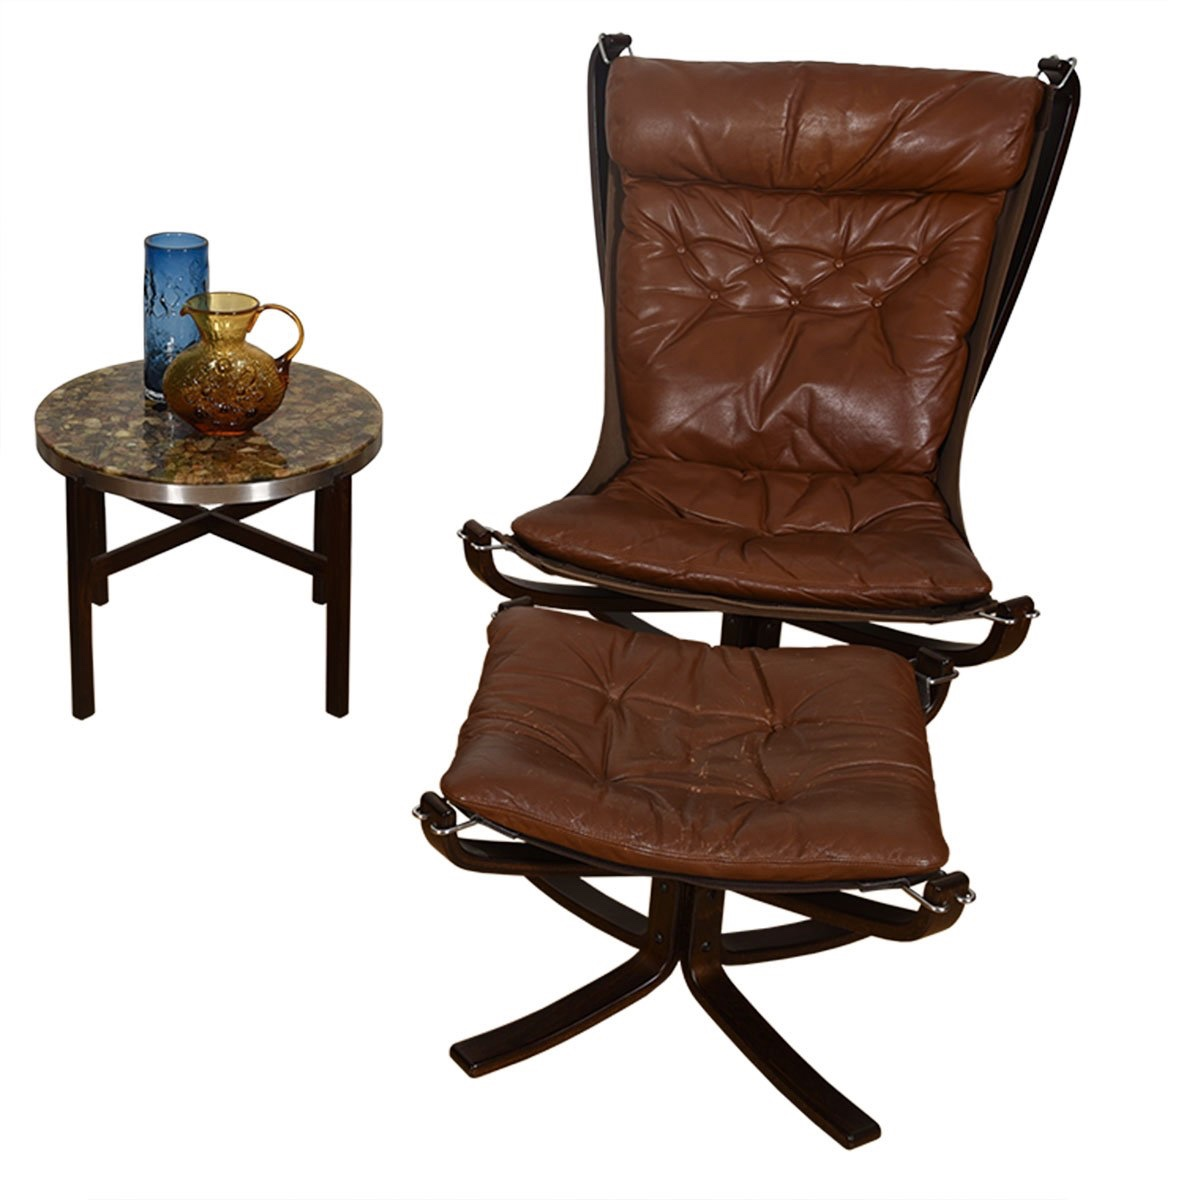 Rosewood + Leather Norwegian Falcon Lounge Chair + Ottoman